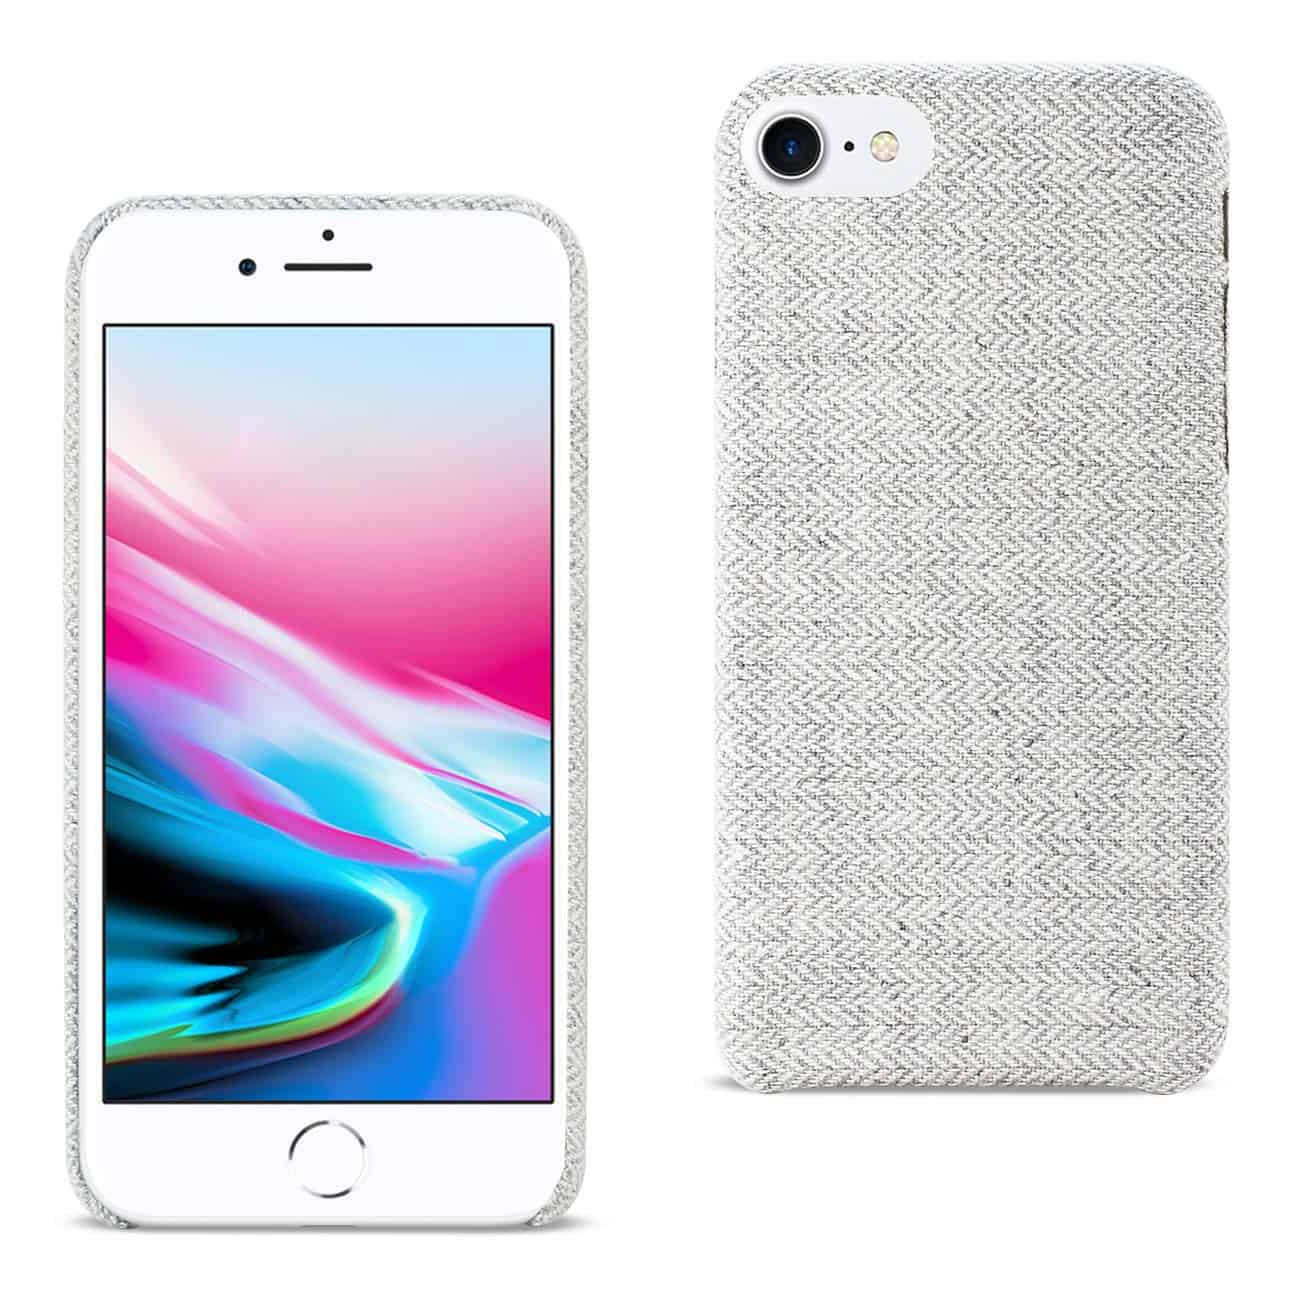 IPHONE 8 HERRINGBONE FABRIC IN LIGHT GRAY